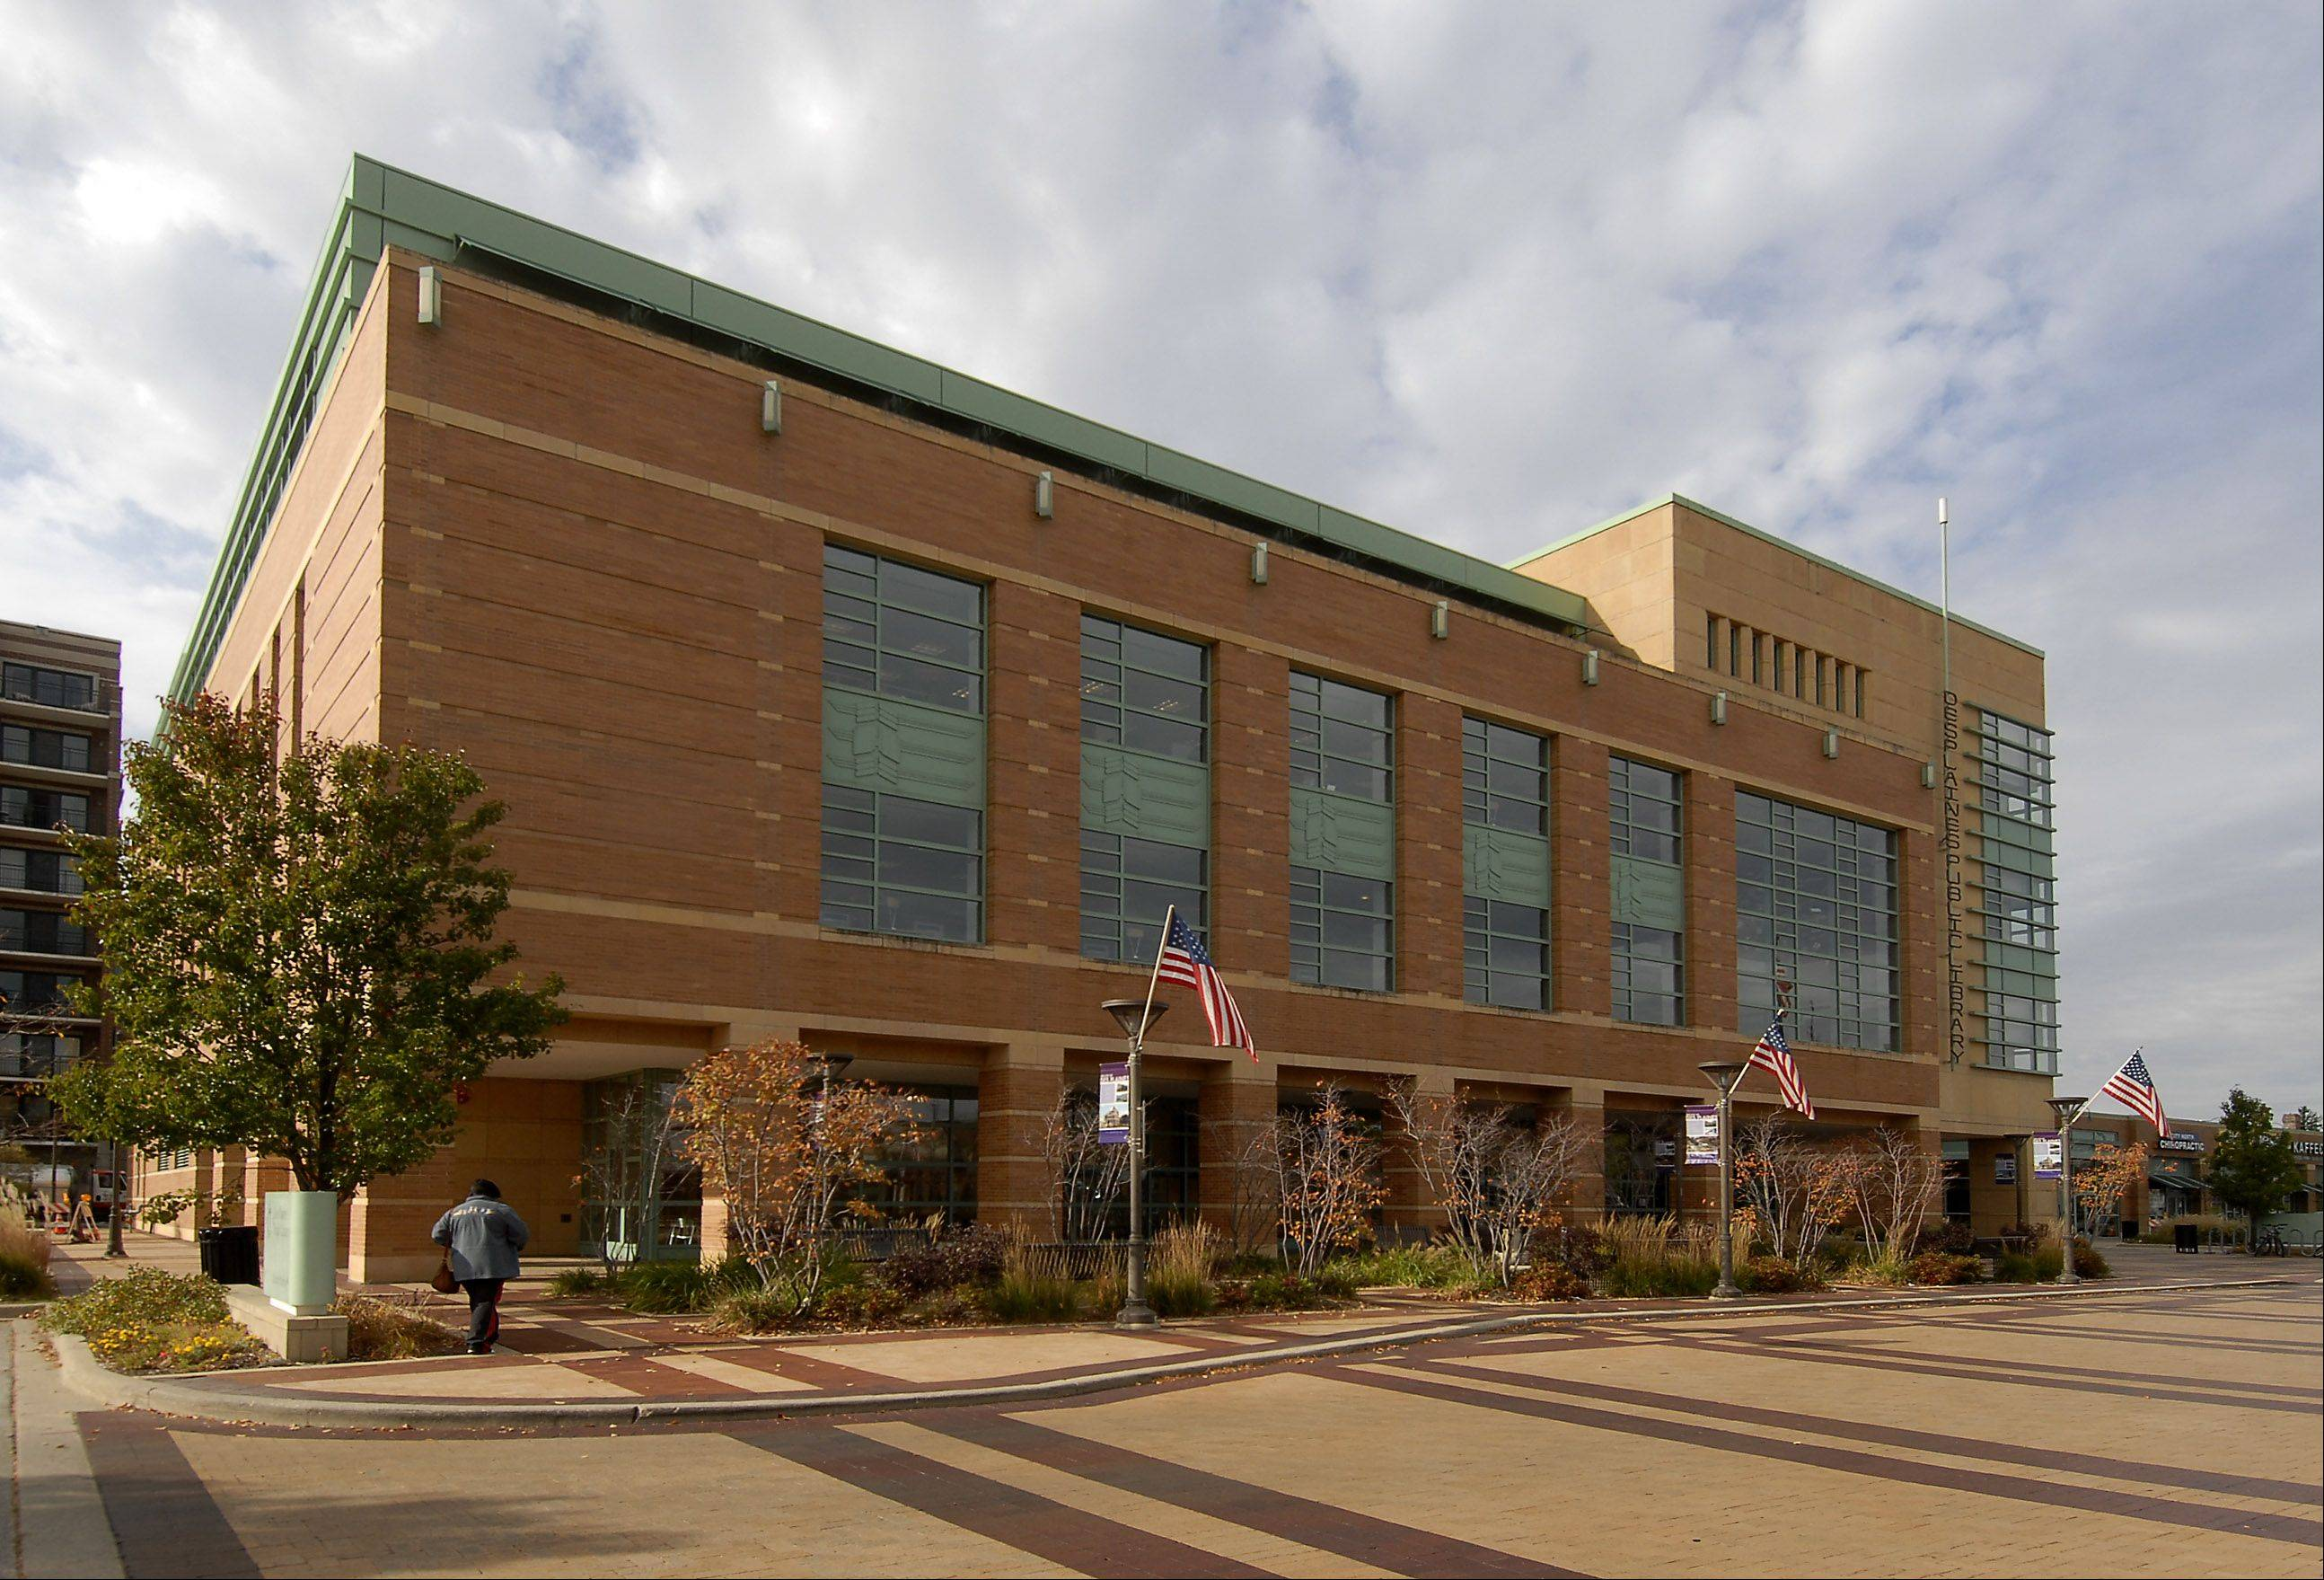 The Des Plaines library budget includes $85,000 for reorganizing wired computer terminals for public use on the fourth floor.